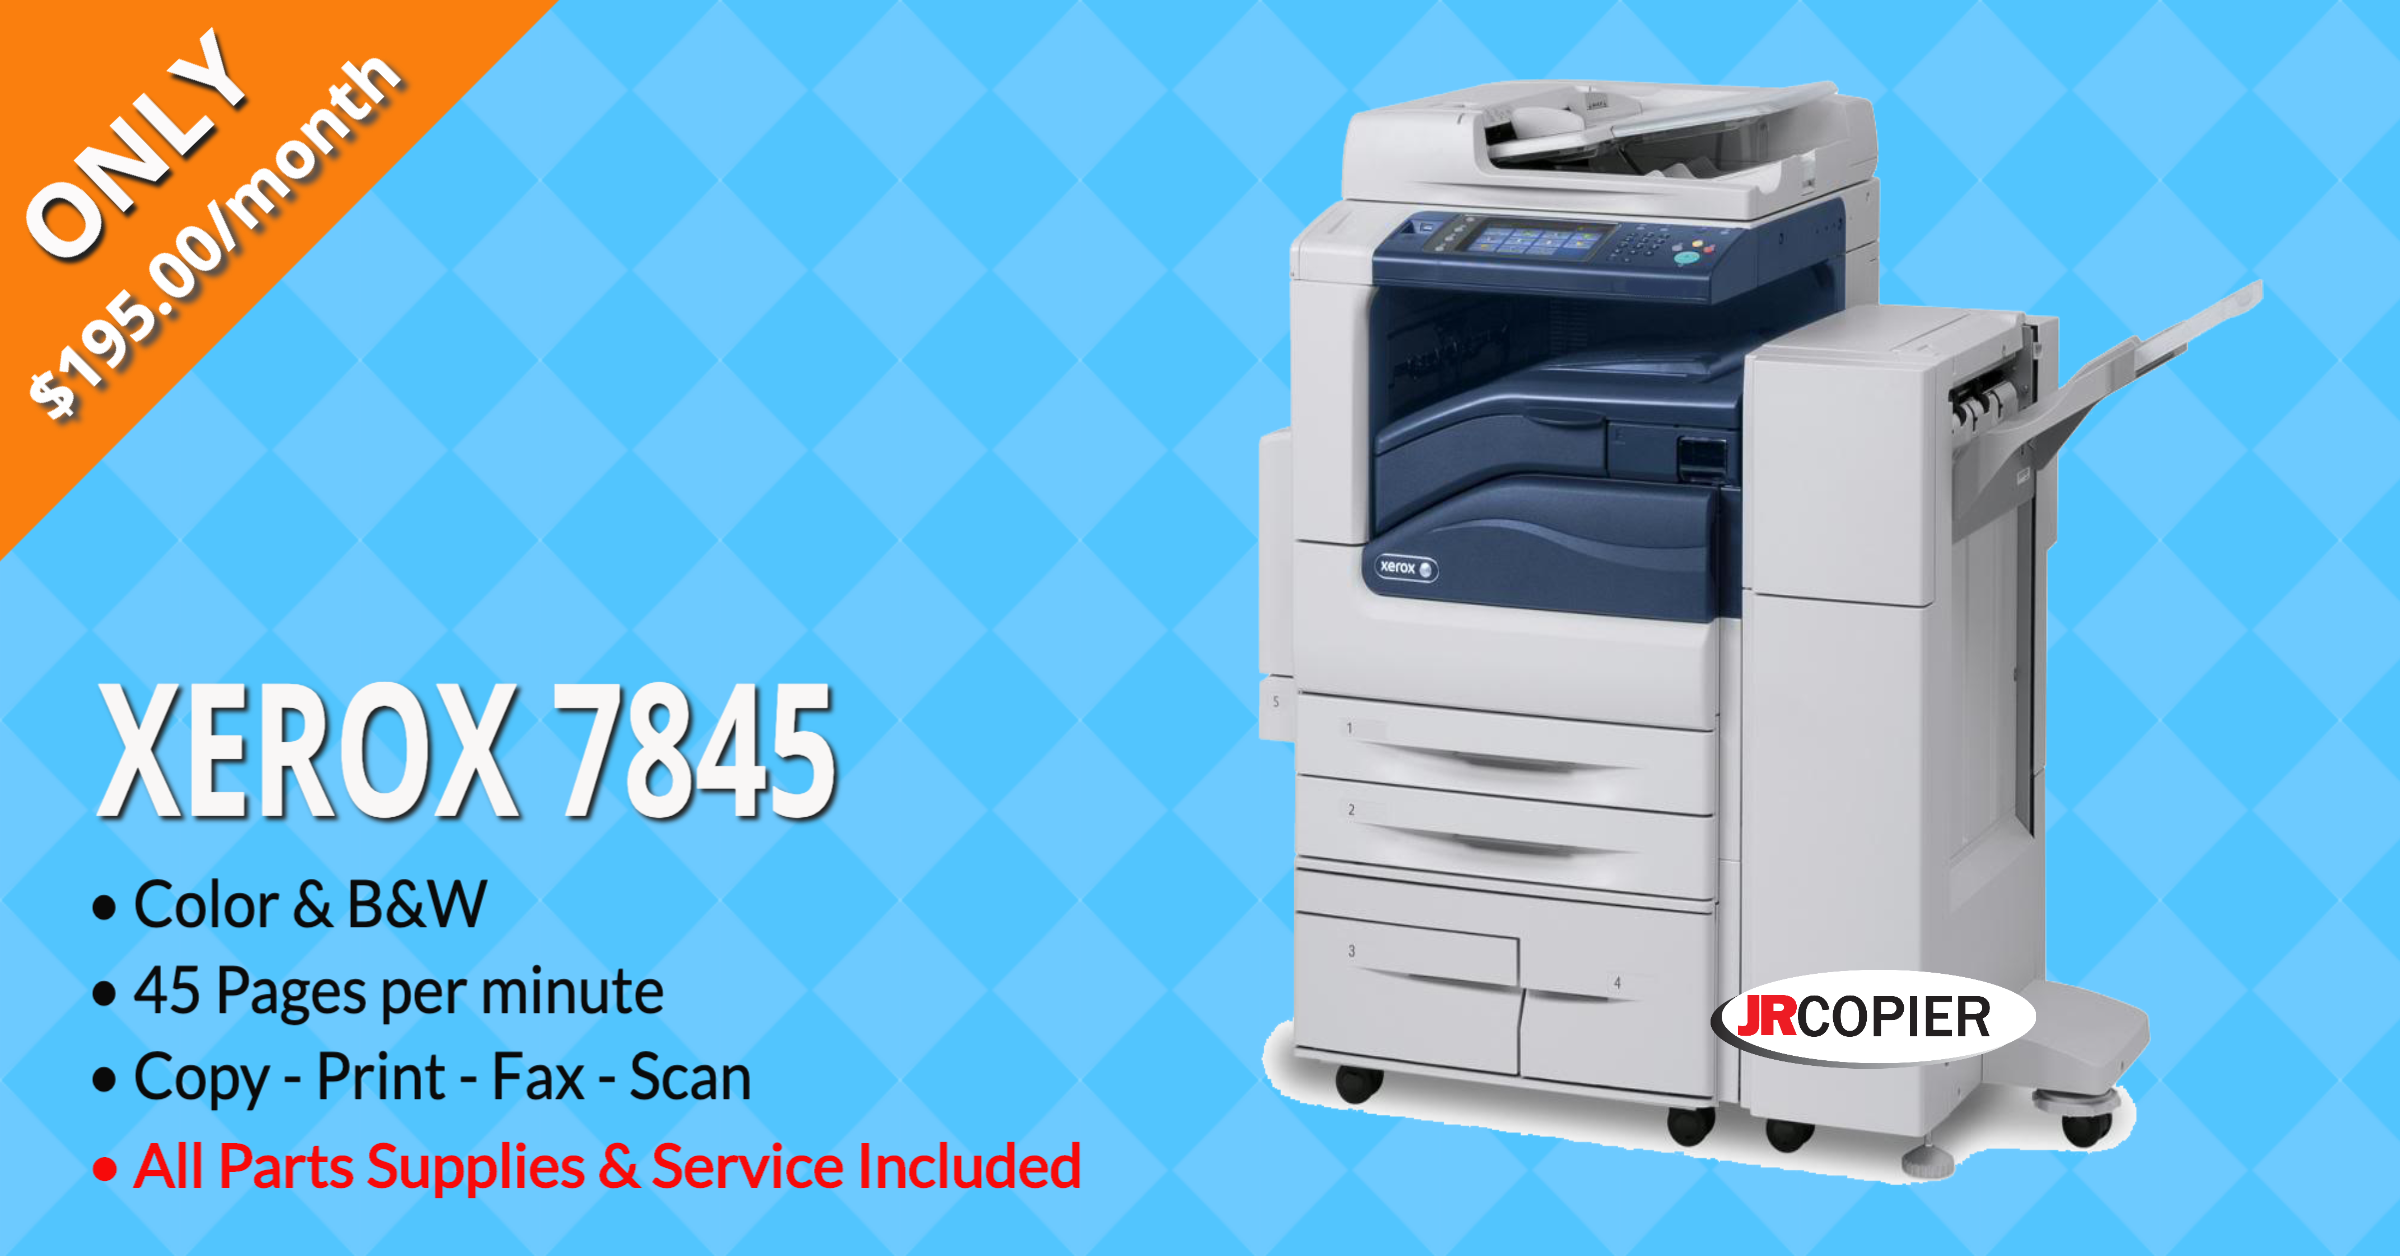 Copy Machine Leasing 77510, 77518, 77539, 77554, 77568, 77573, 77590, 77591, 77592